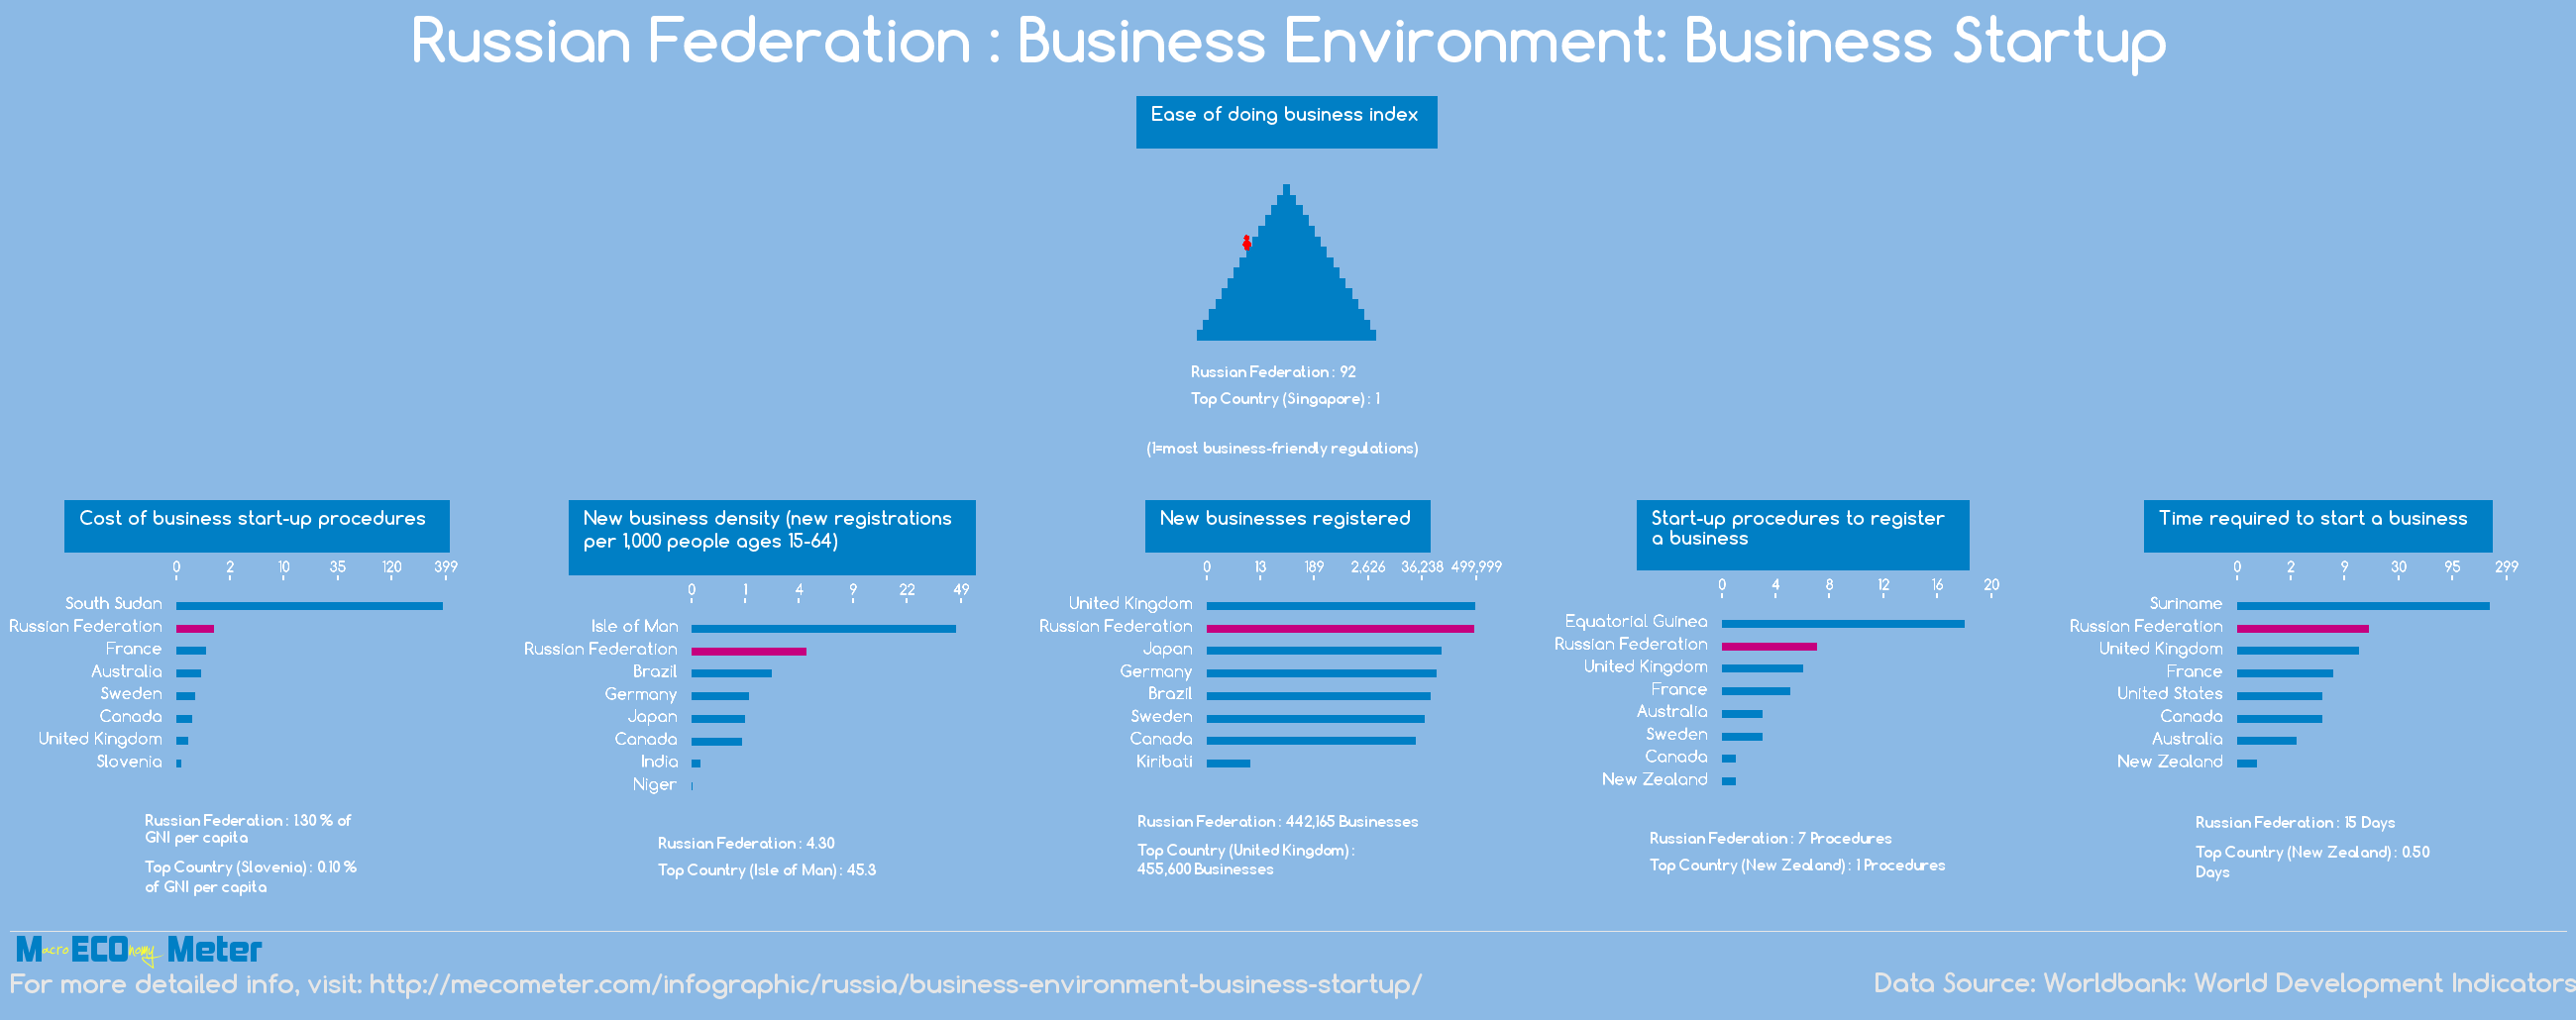 Russian Federation : Business Environment: Business Startup